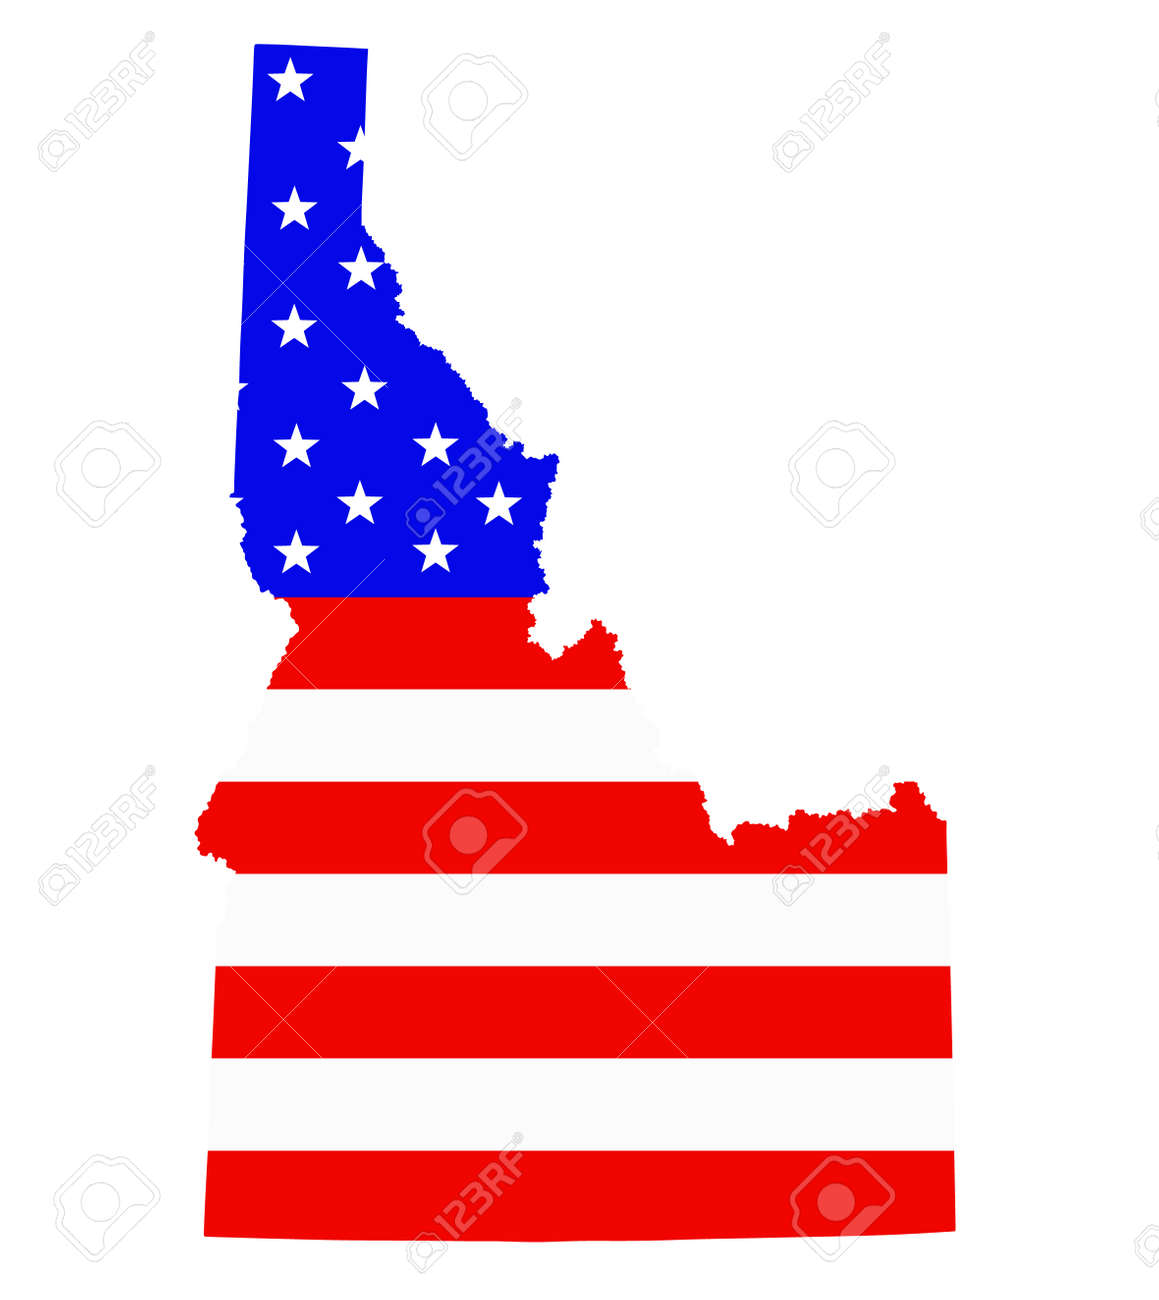 Idaho state map vector silhouette illustration. United States of America flag over Idaho map. USA, American national symbol of pride and patriotism. Vote election campaign banner. - 172749142